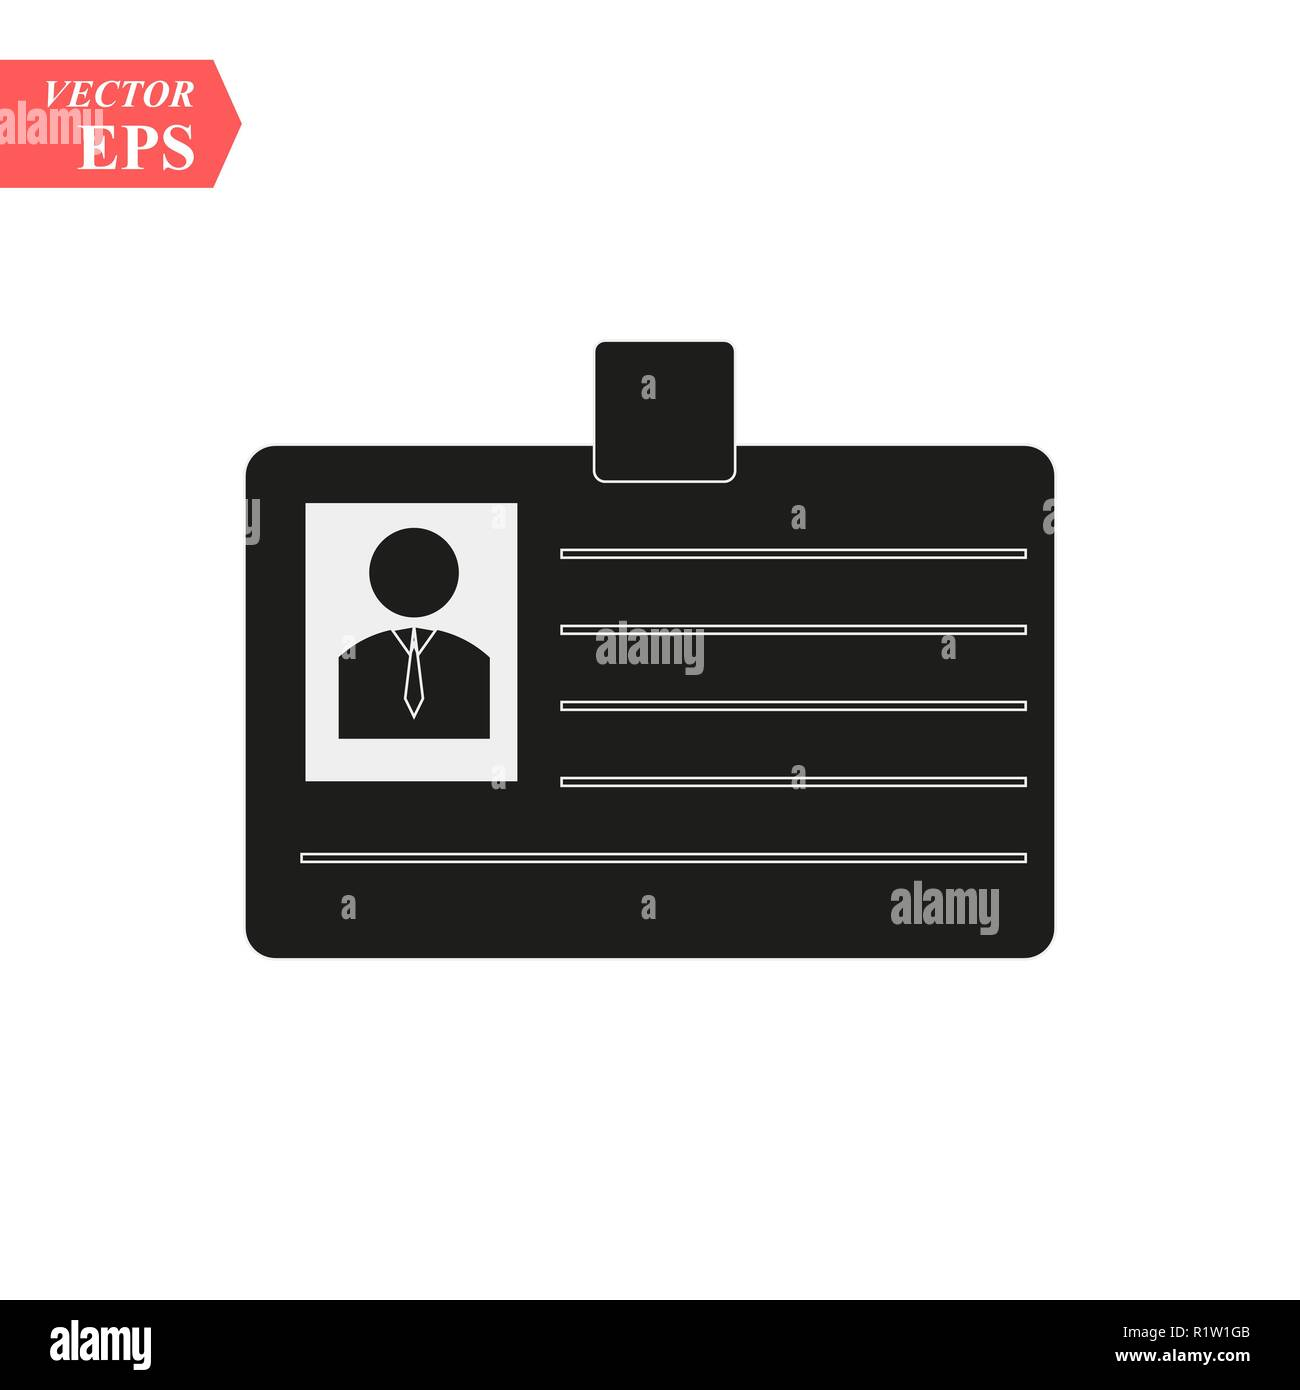 id cards icon - vector name tag - identity badge symbol eps10 - Stock Image